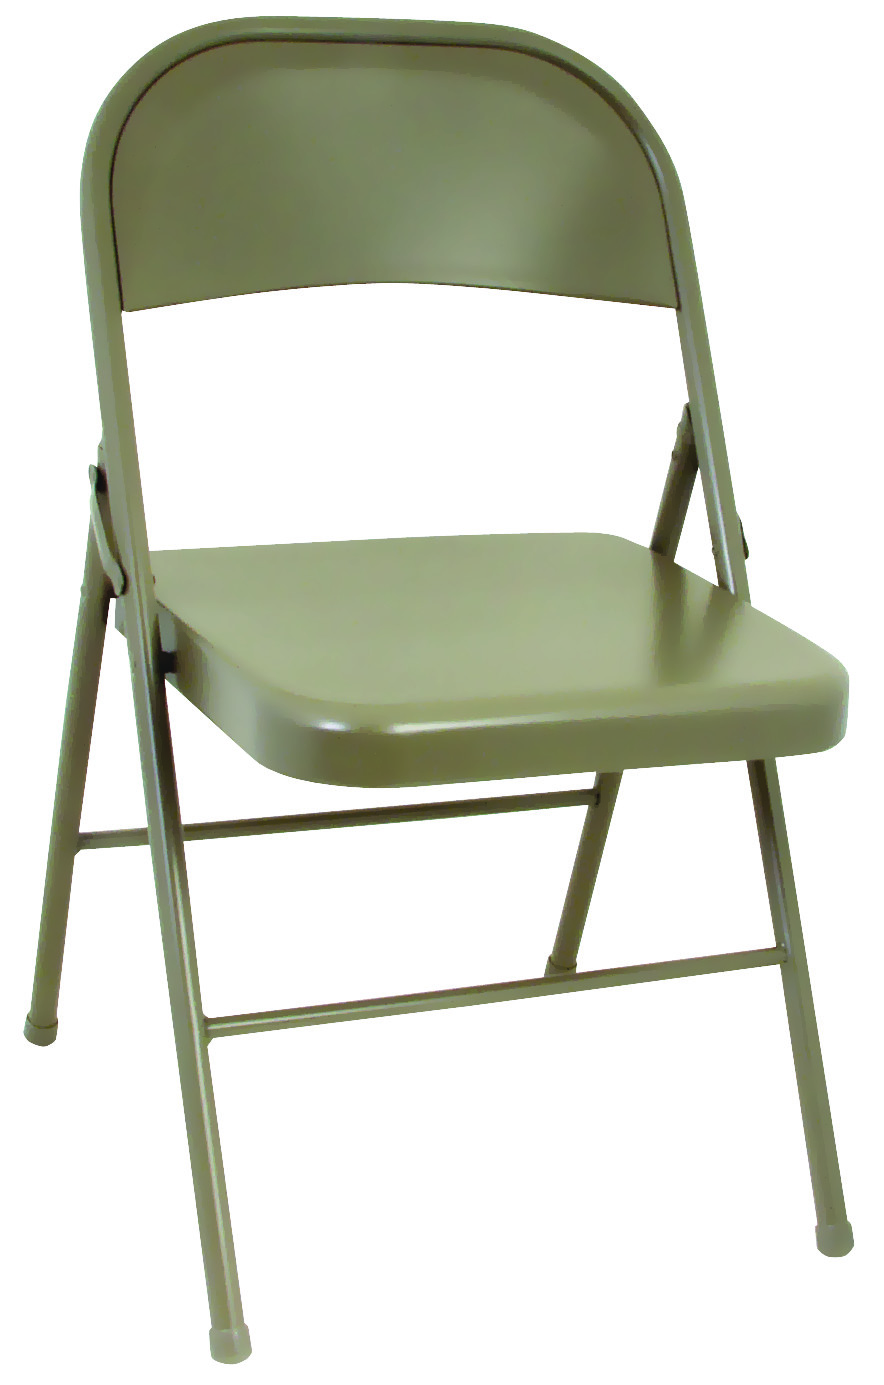 Cosco Folding Chair Cosco 14711ant4 All Steel Folding Chair Antique Linen